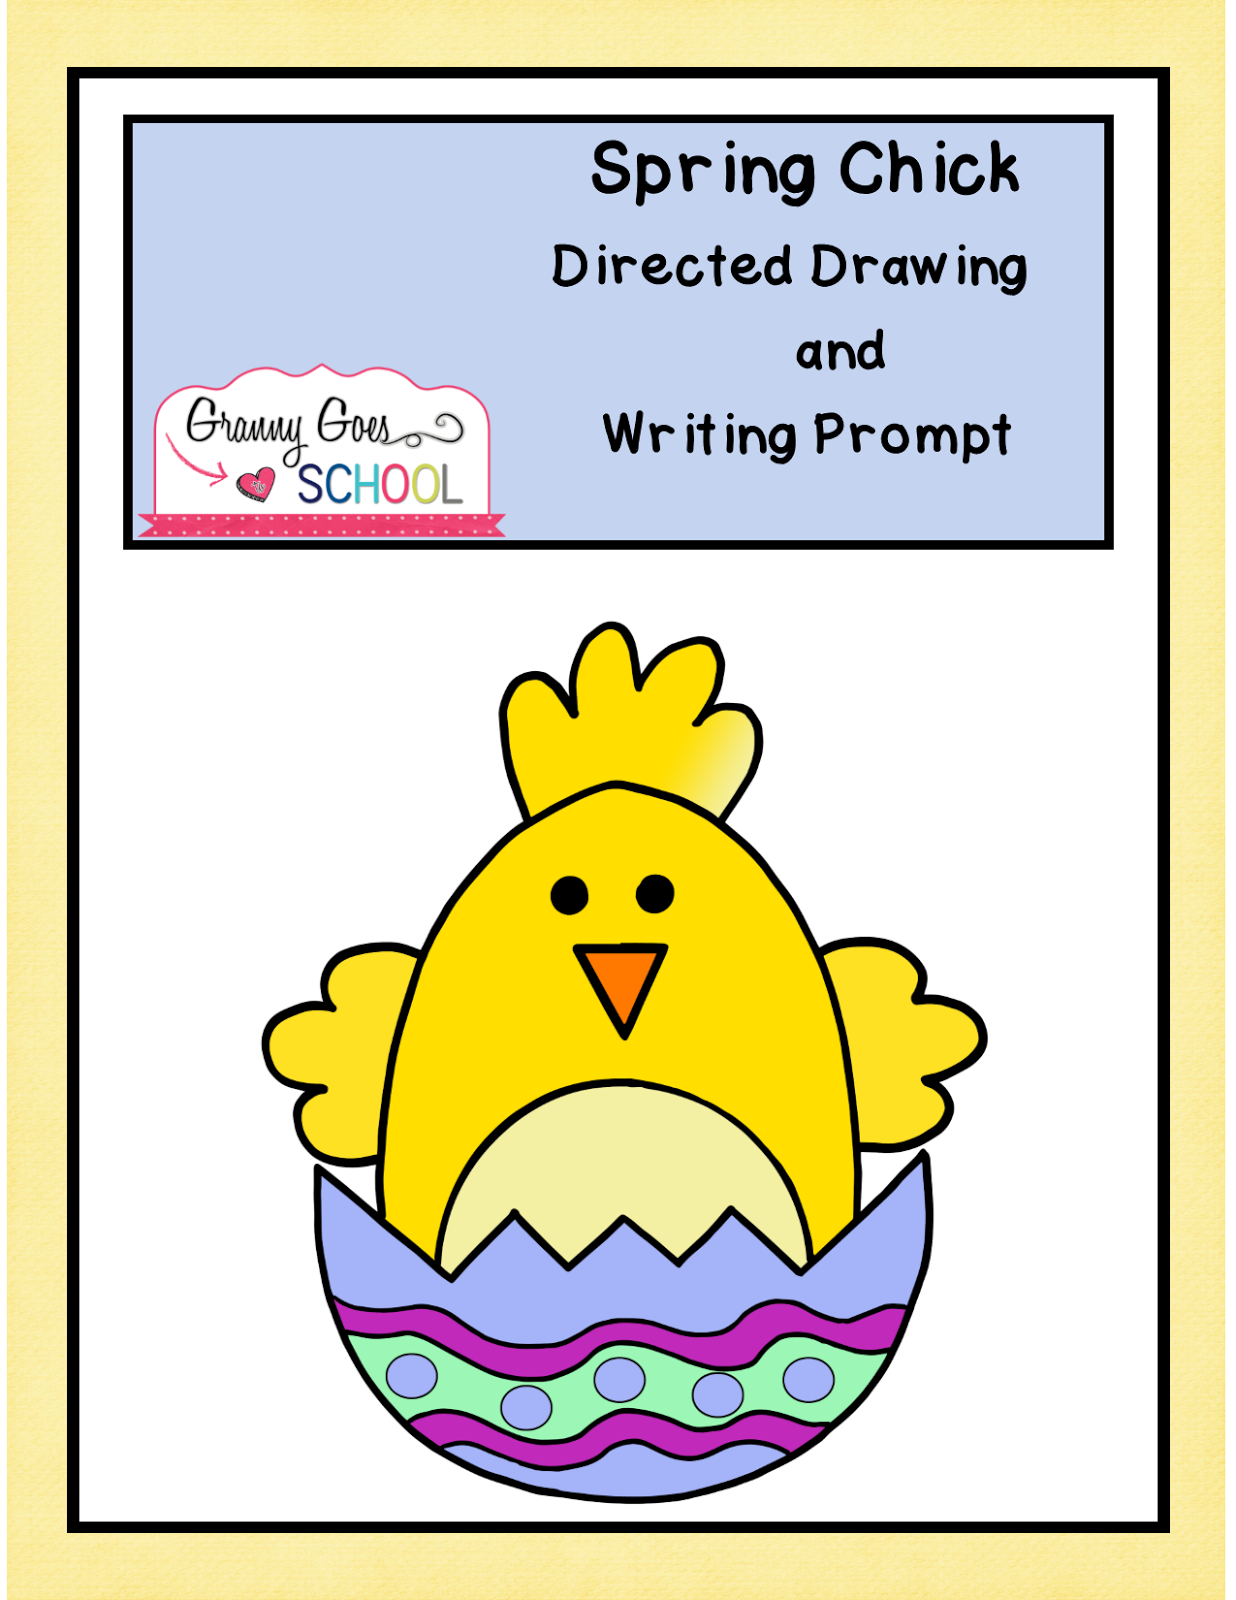 https://www.teacherspayteachers.com/Product/Spring-Chick-Directed-Drawing-and-Writing-Prompt-Freebie-1793228